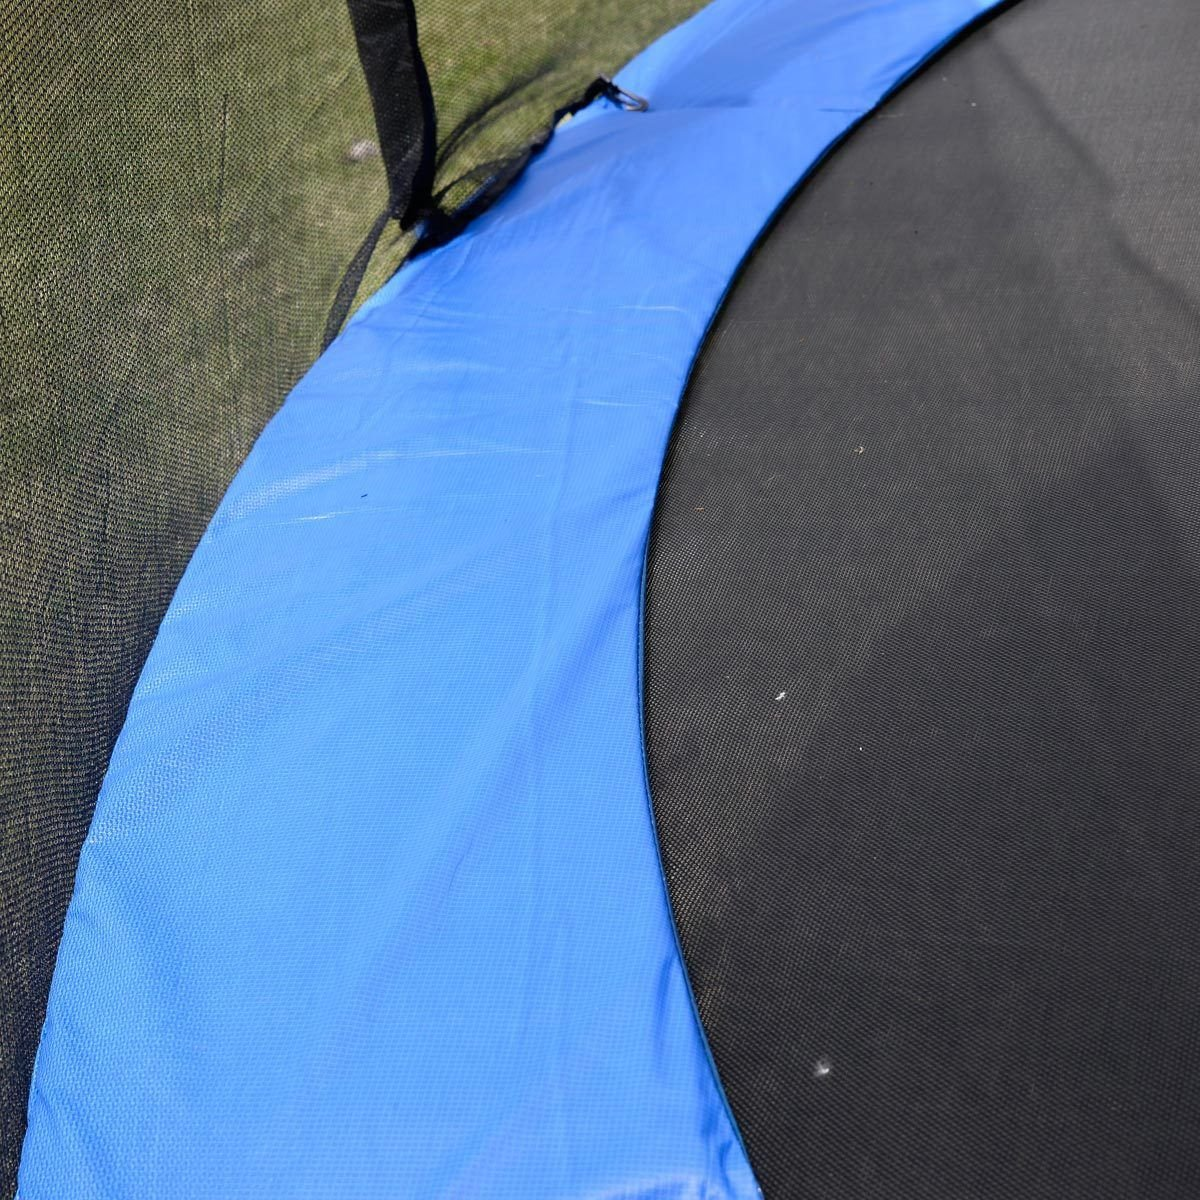 Safety Round Frame Blue Pad Spring Pad Replacement Cover for 10FT Trampoline New by Unknown